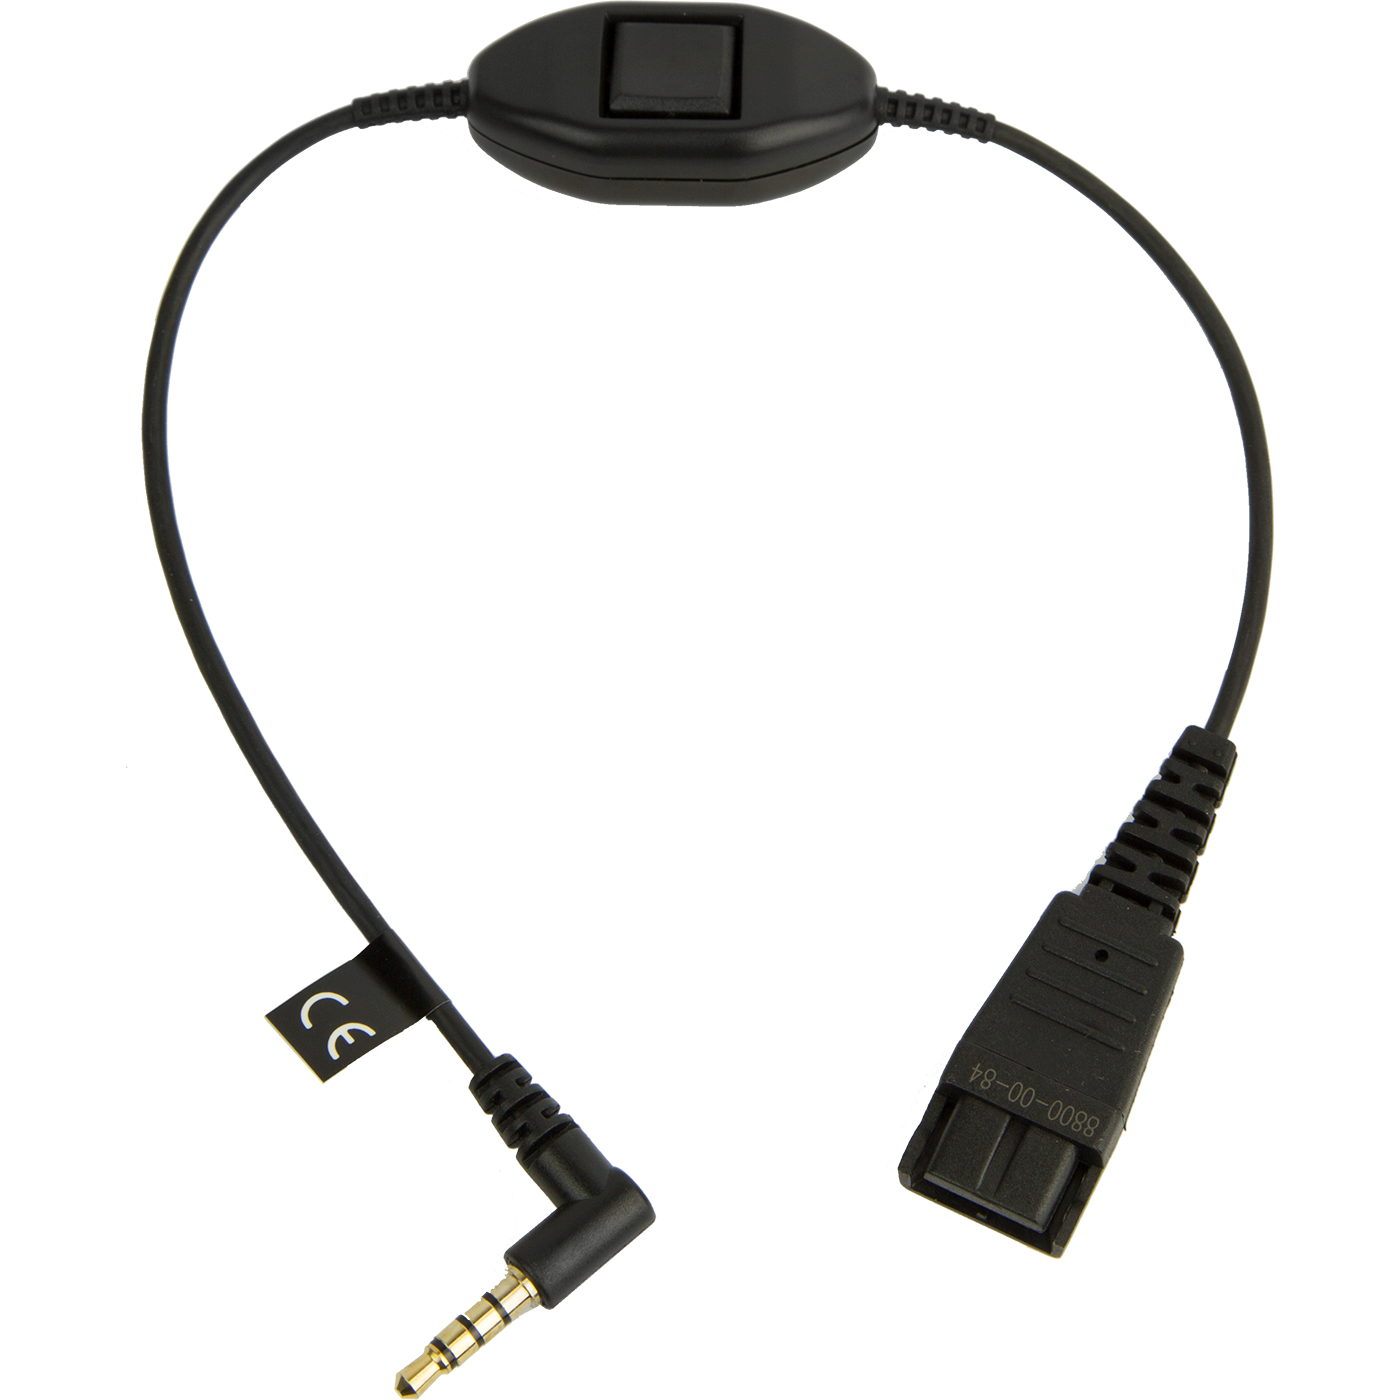 Jabra Quick Disconnect (QD) To 3.5 Mm Jack Cord For Nokia, With Answer/end/mute Function